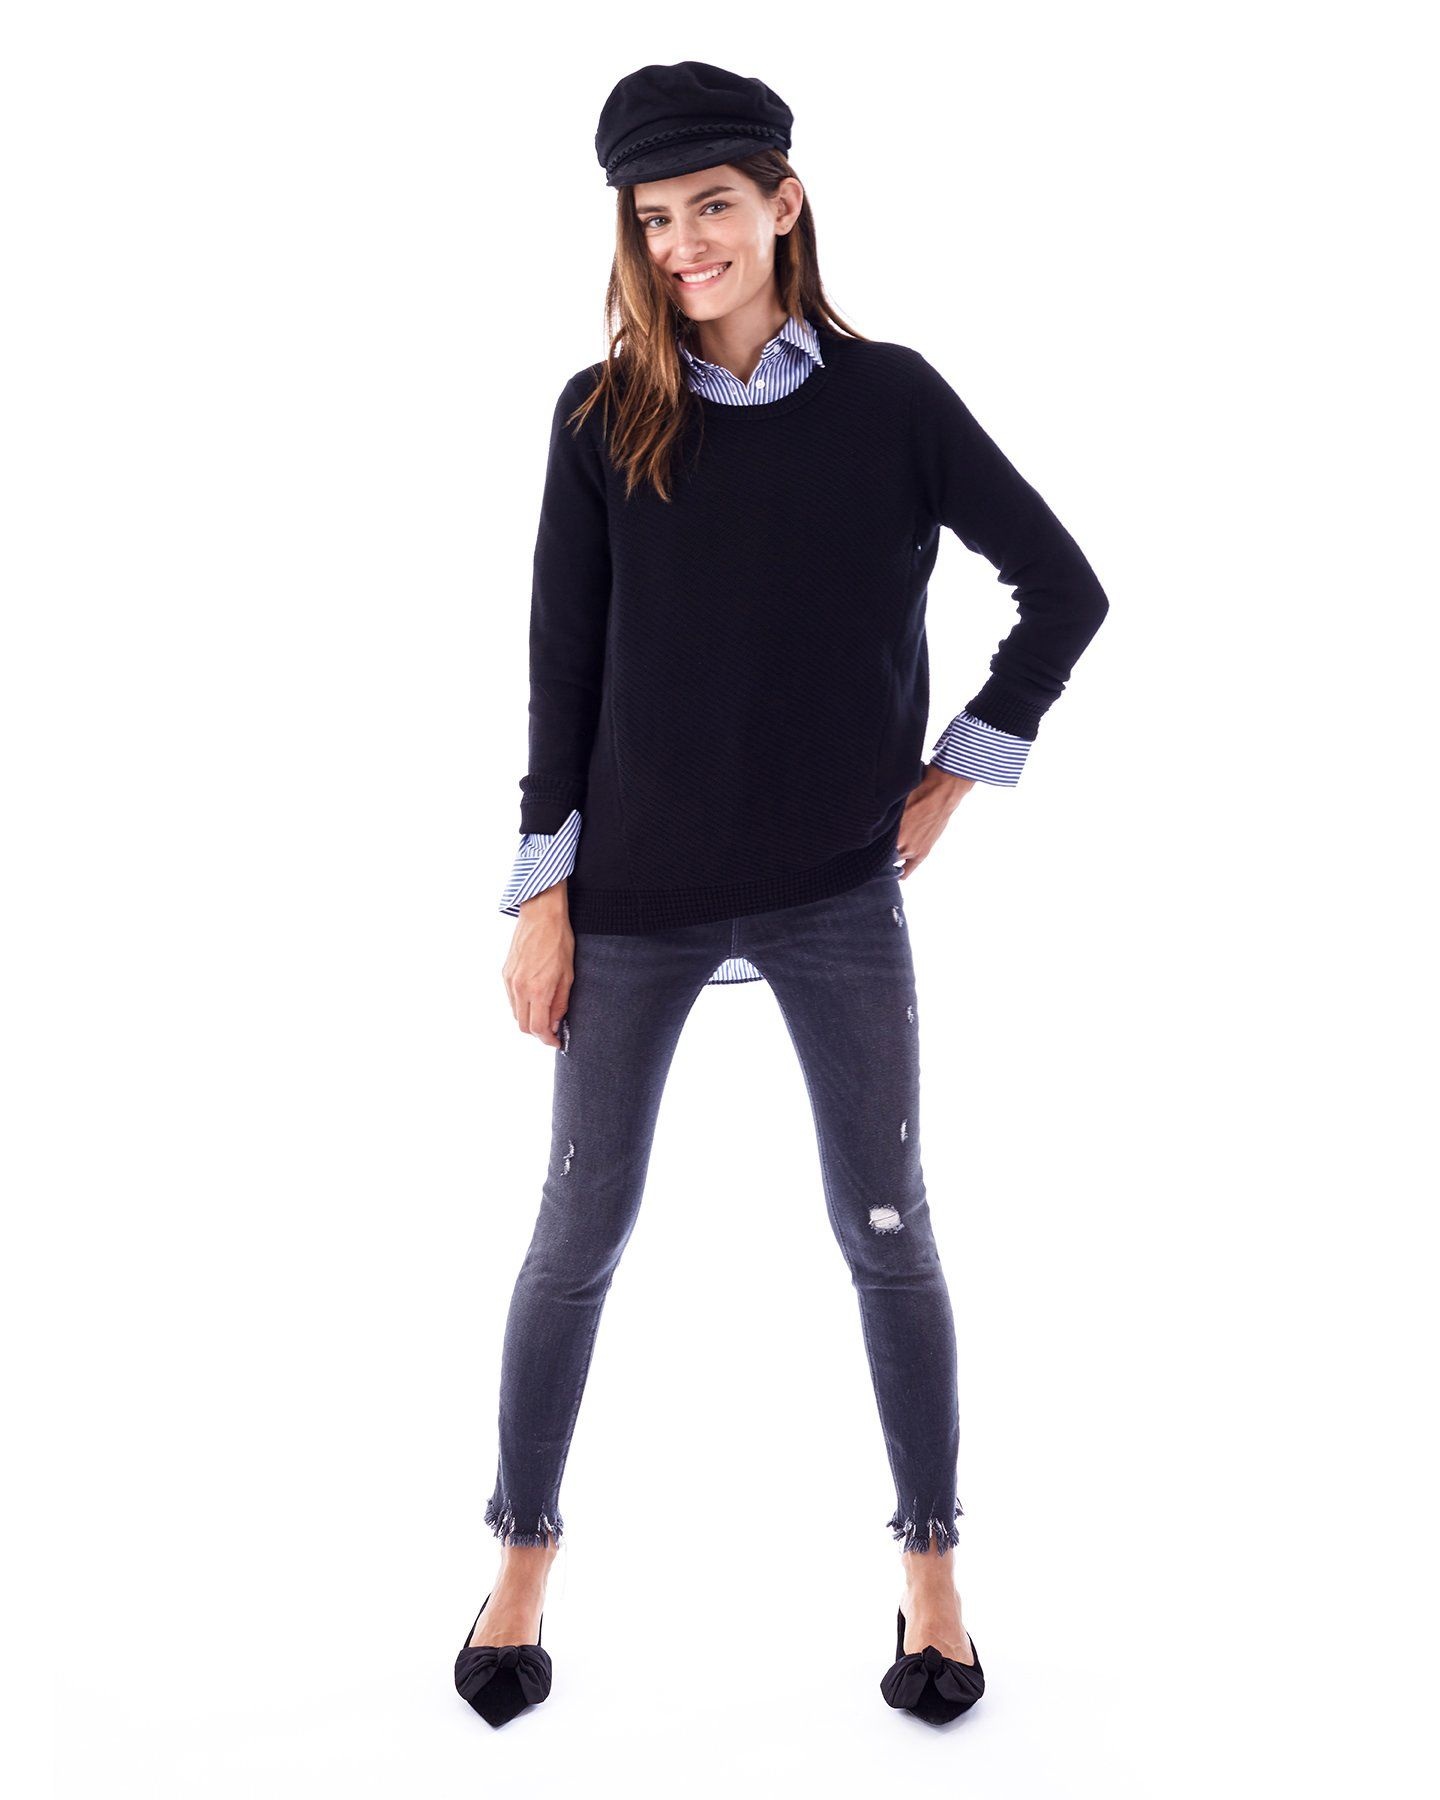 3031253afc750 ... The Wiley Nursing and Maternity Sweater with Side Zipper long sleeve  sweater Loyal Hana ...